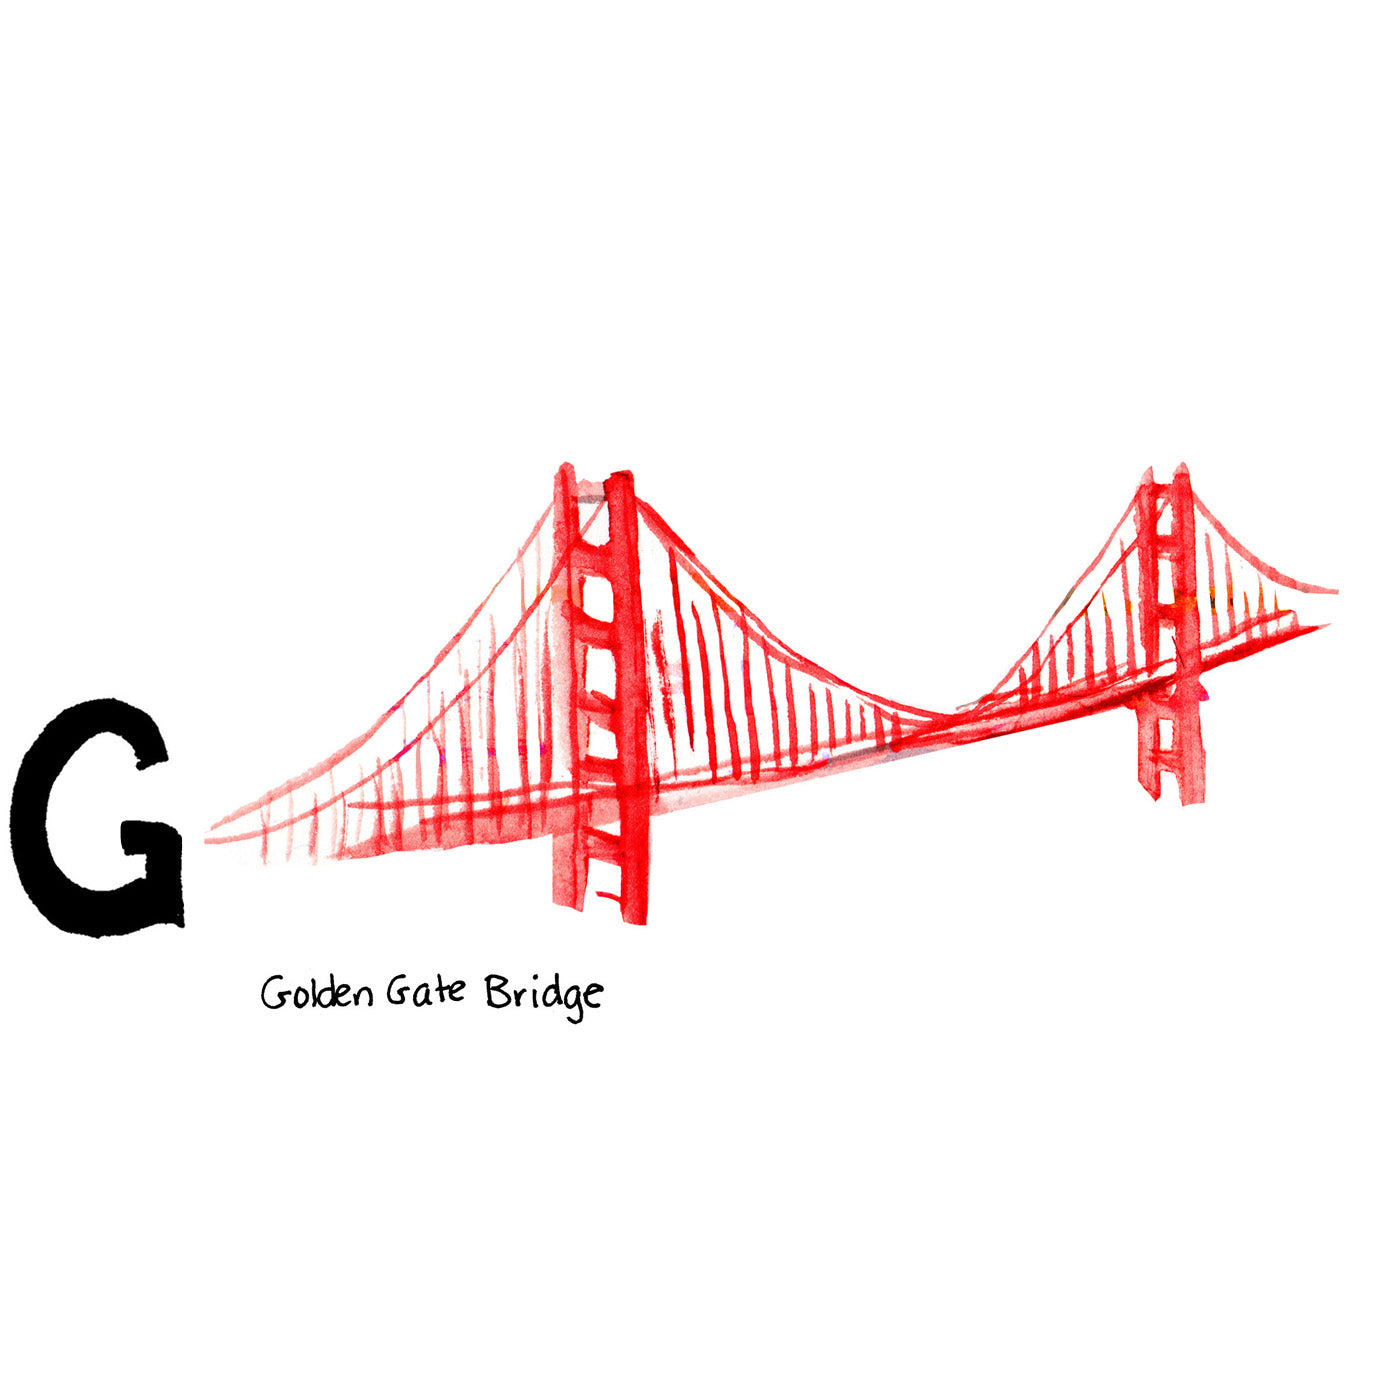 G is for Golden Gate Bridge. When it opened in 1937 it was both the longest and the tallest bridge ever built. It is one of the most famous tourist attractions in California and even in the United States.